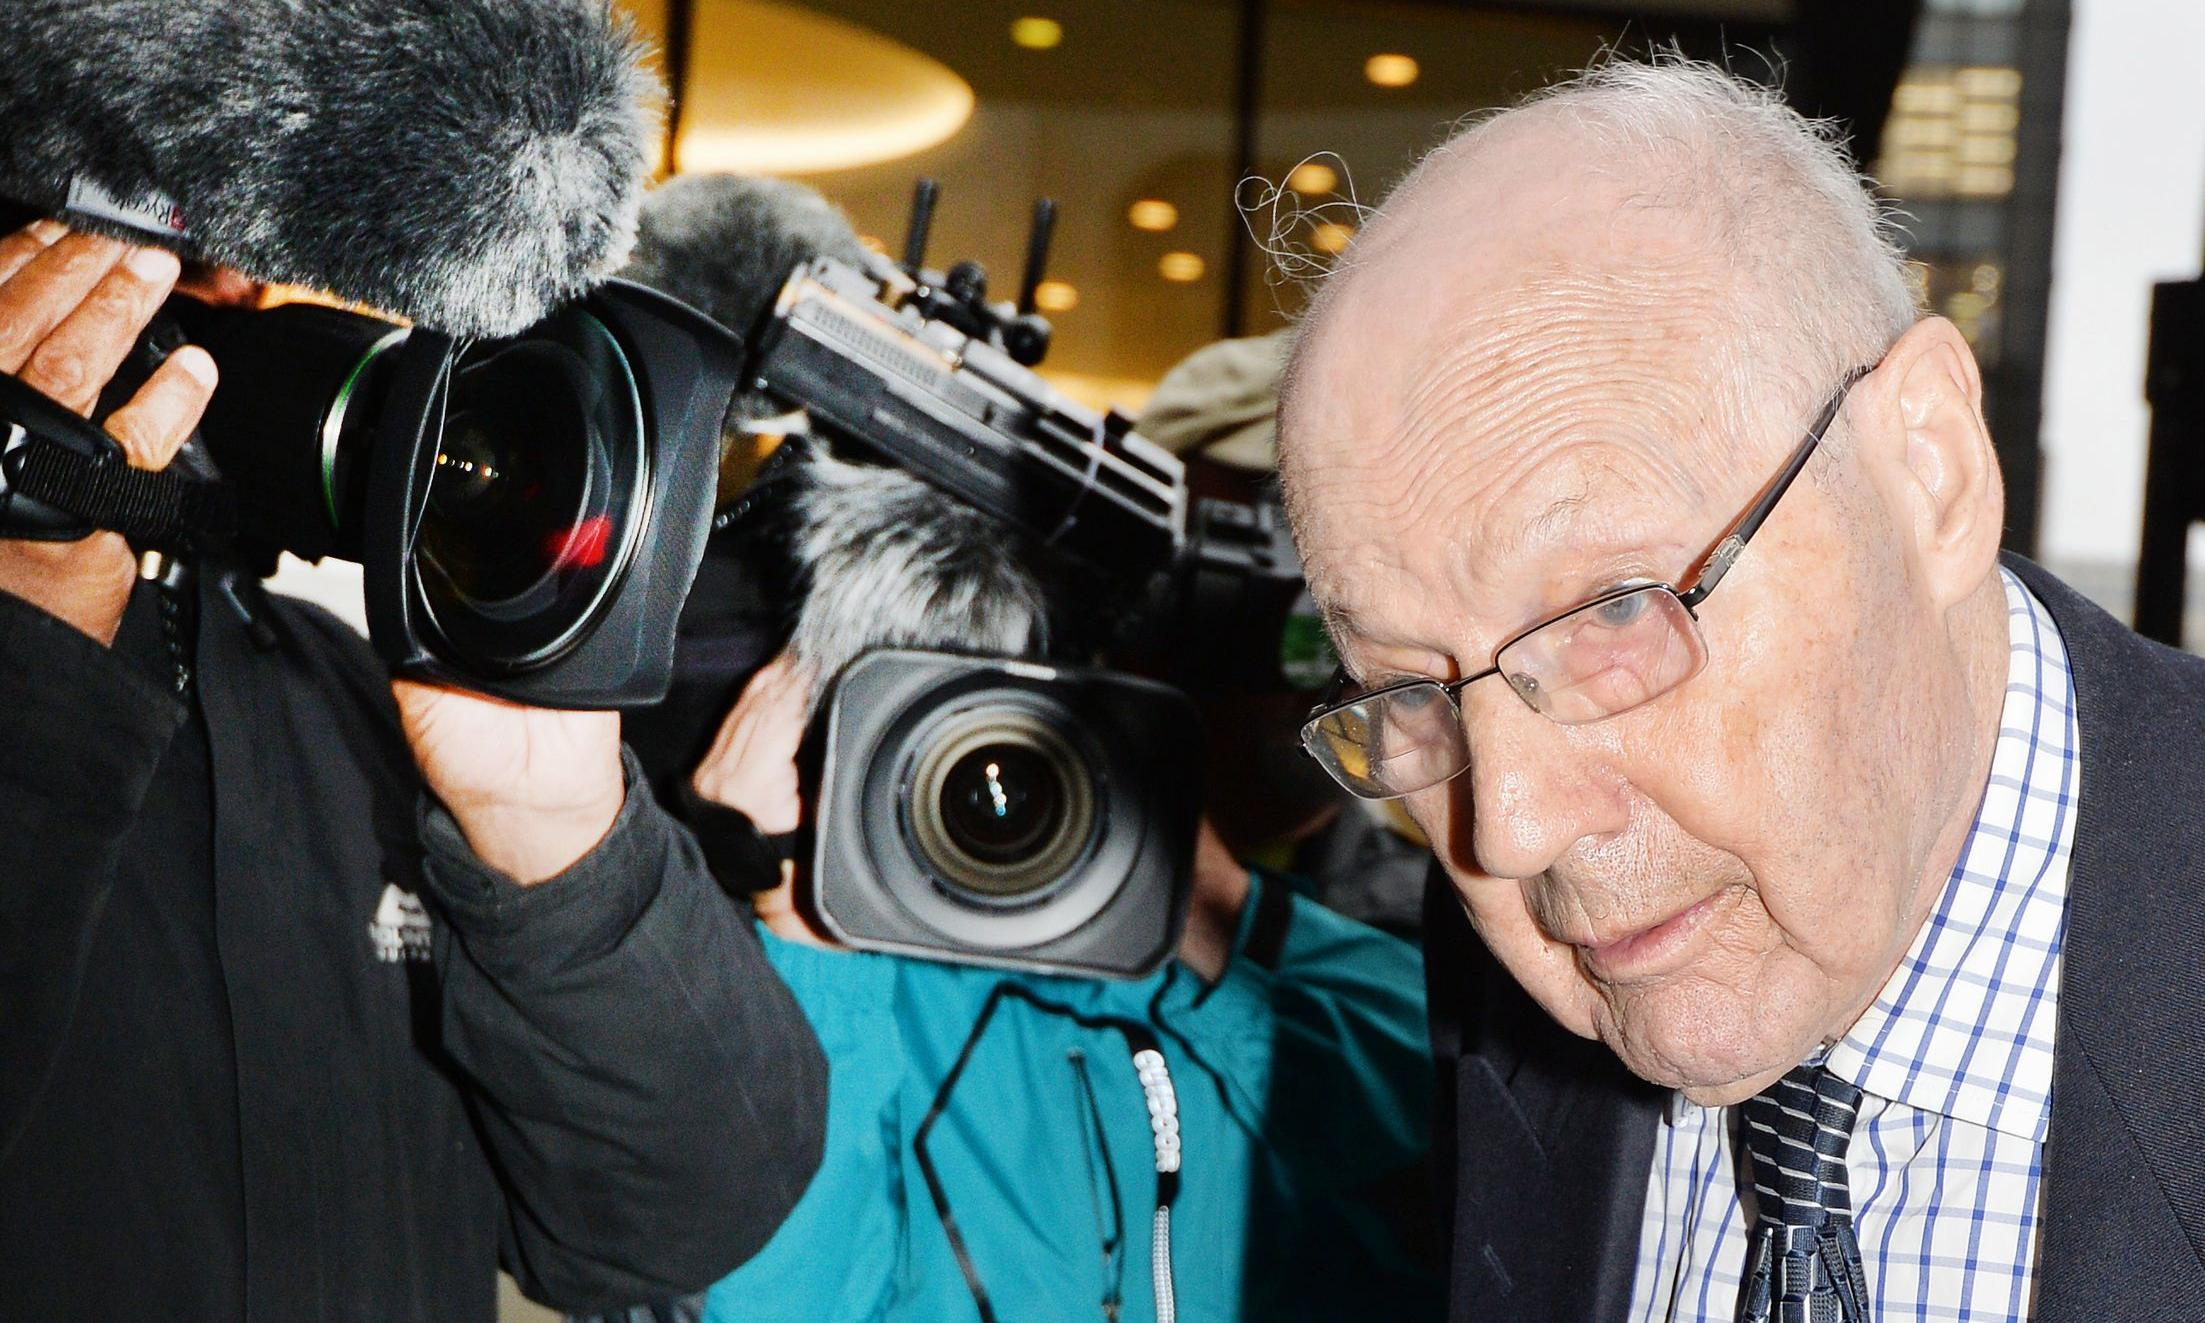 Peter Ball, former C of E bishop jailed for sexual abuse, dies at 87